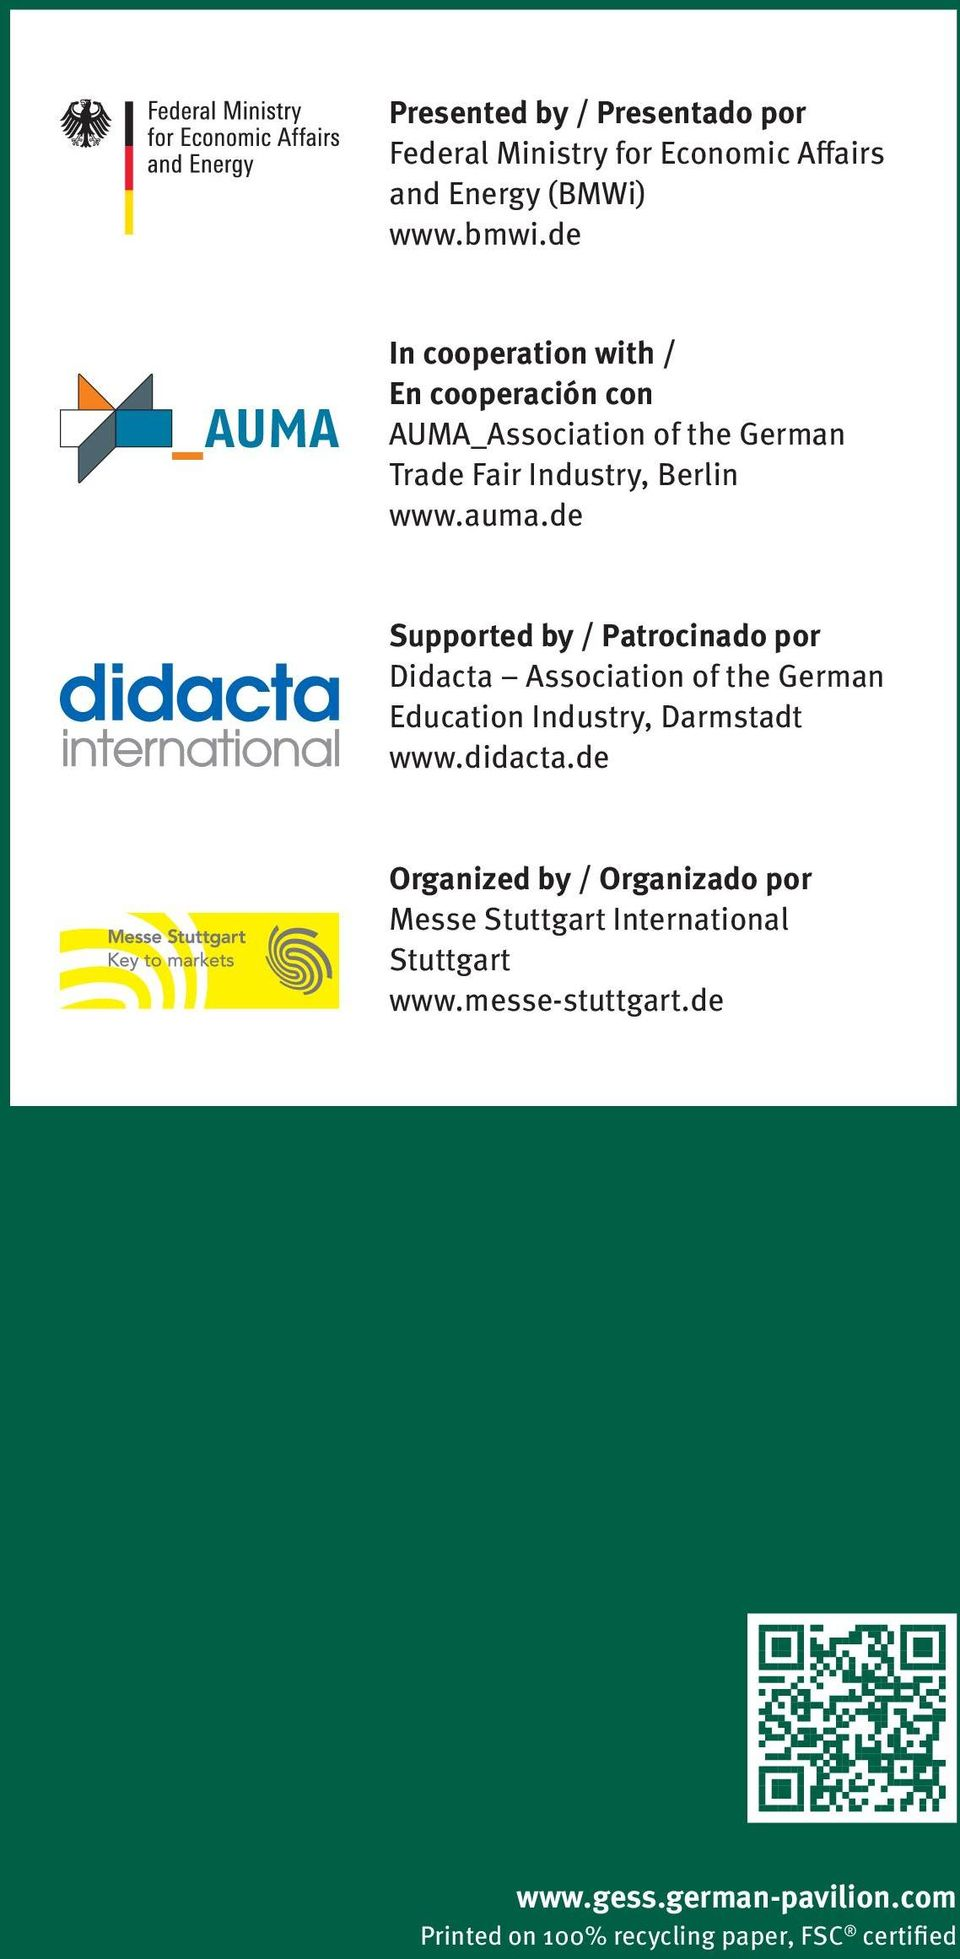 de Supported by / Patrocinado por Didacta Association of the German Education Industry, Darmstadt www.didacta.